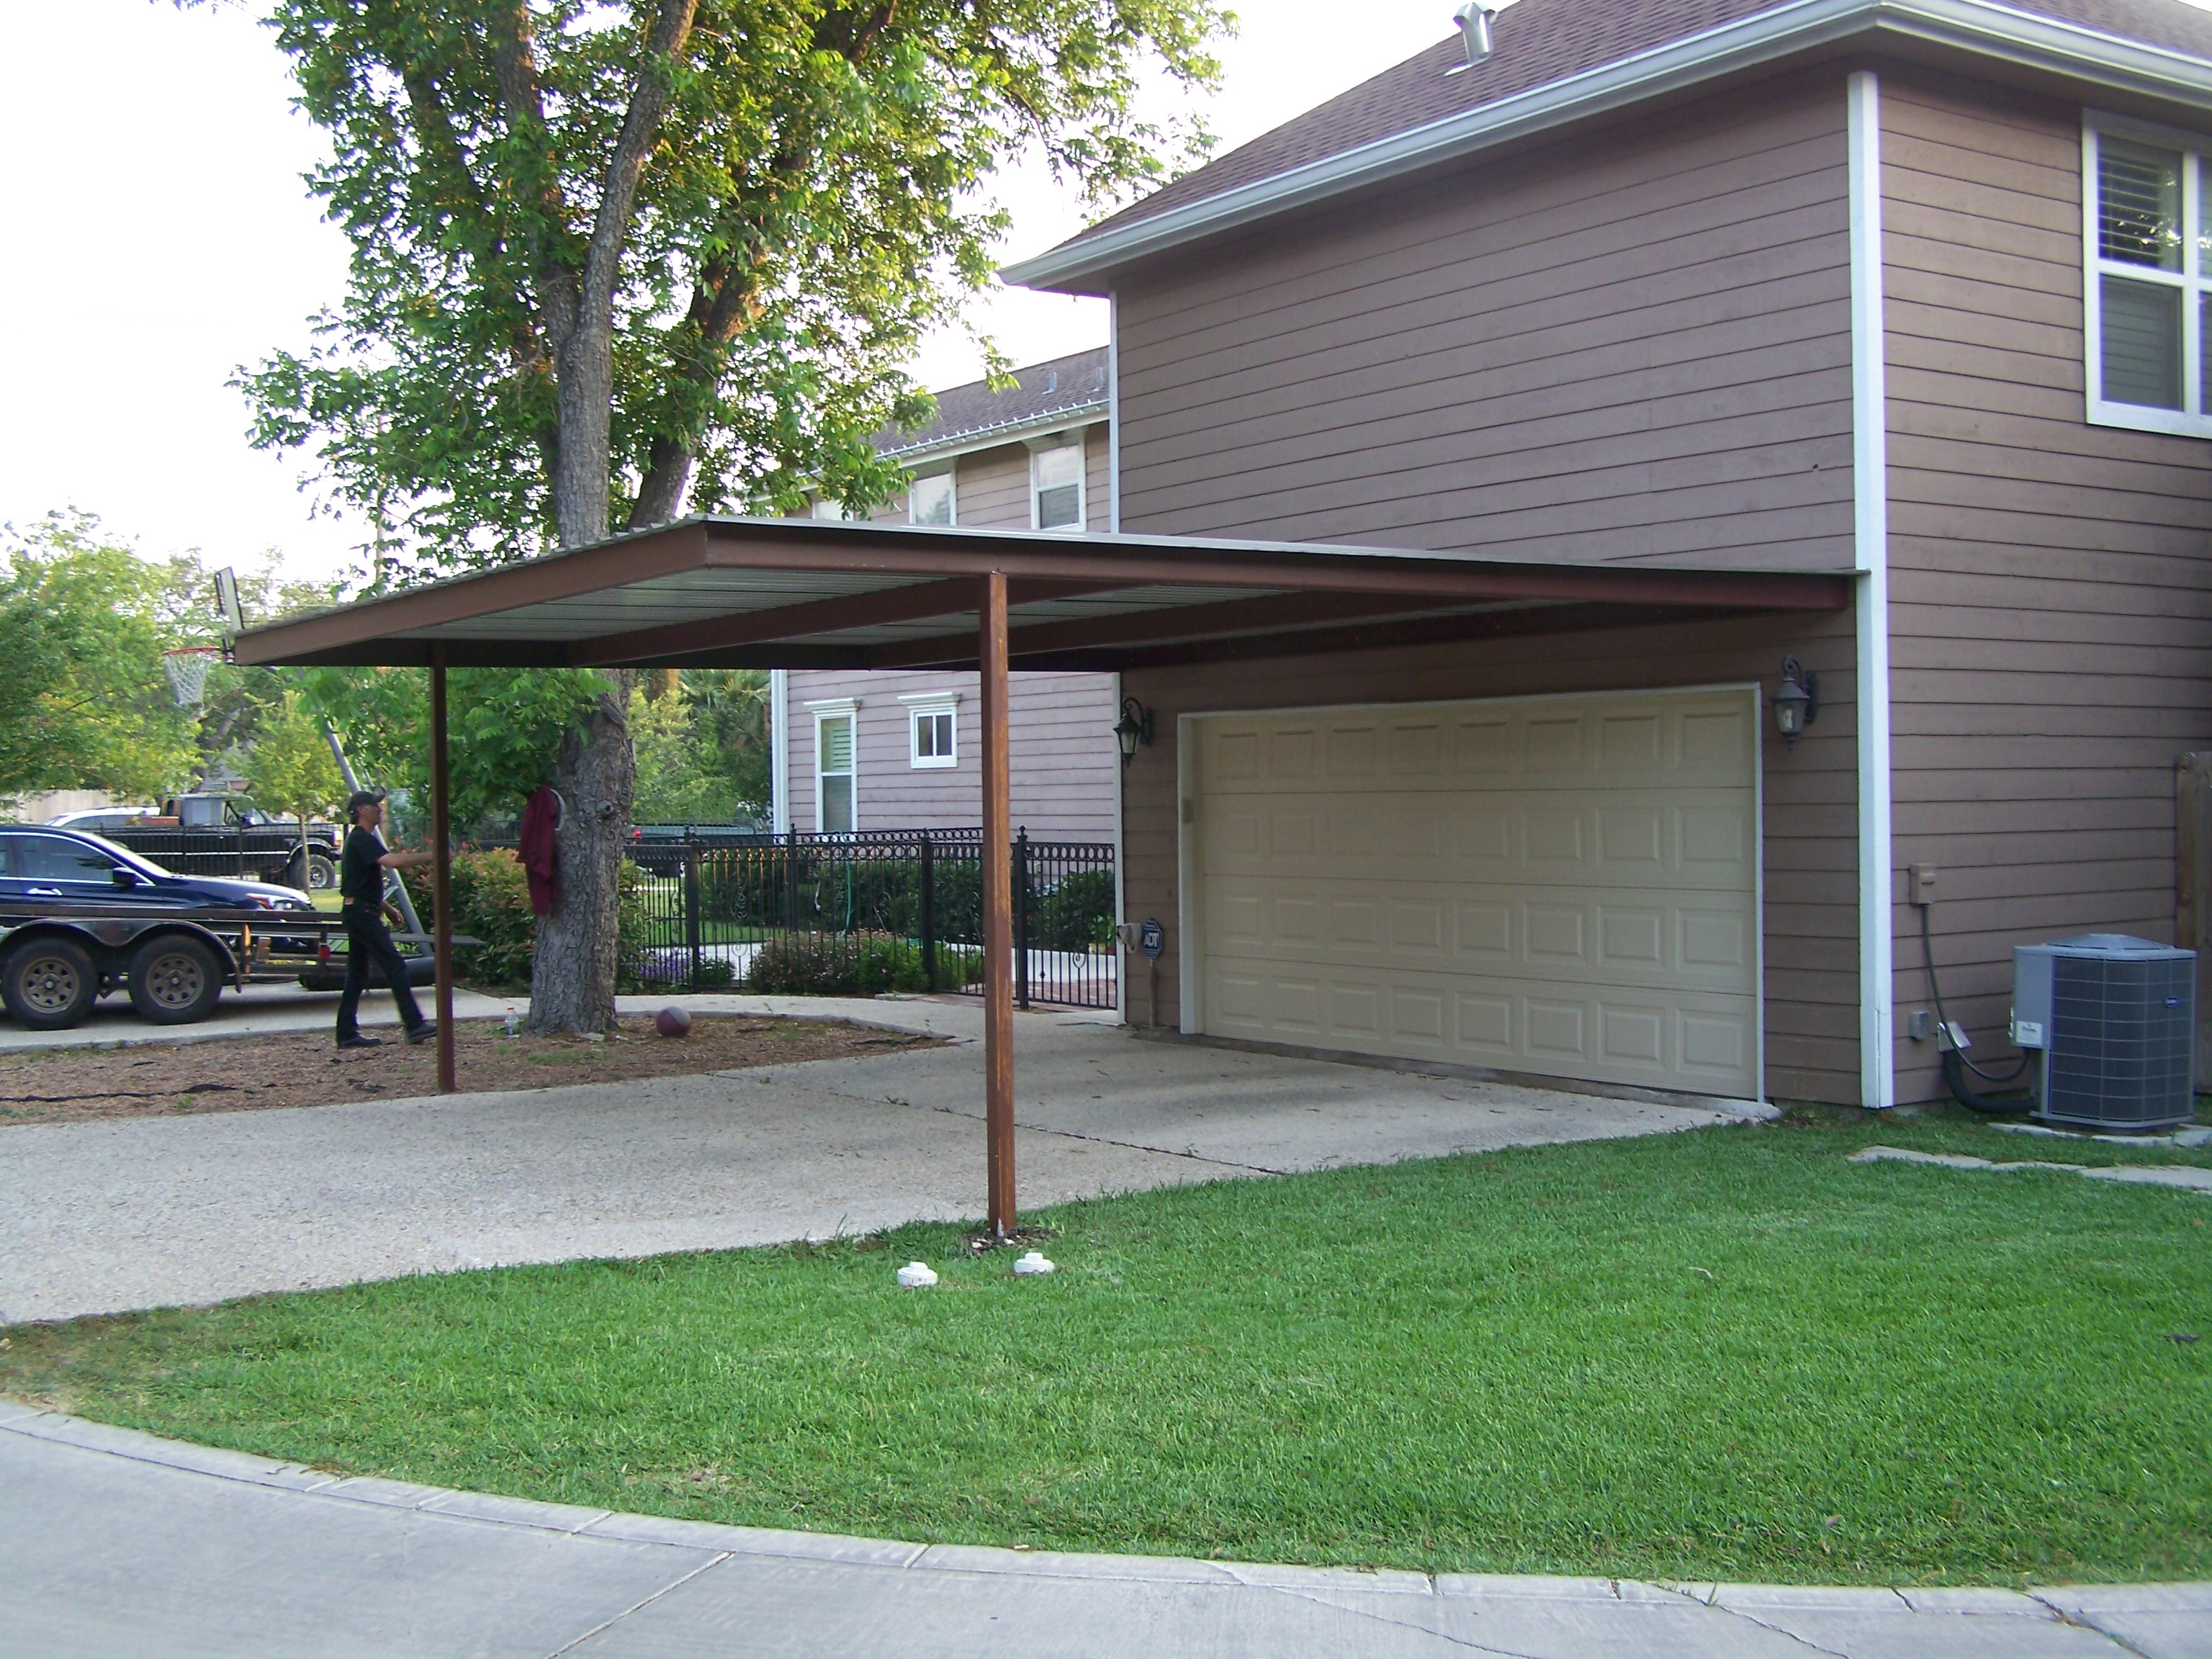 Carport Attached To Garage Dutch Gable Carport Galleries